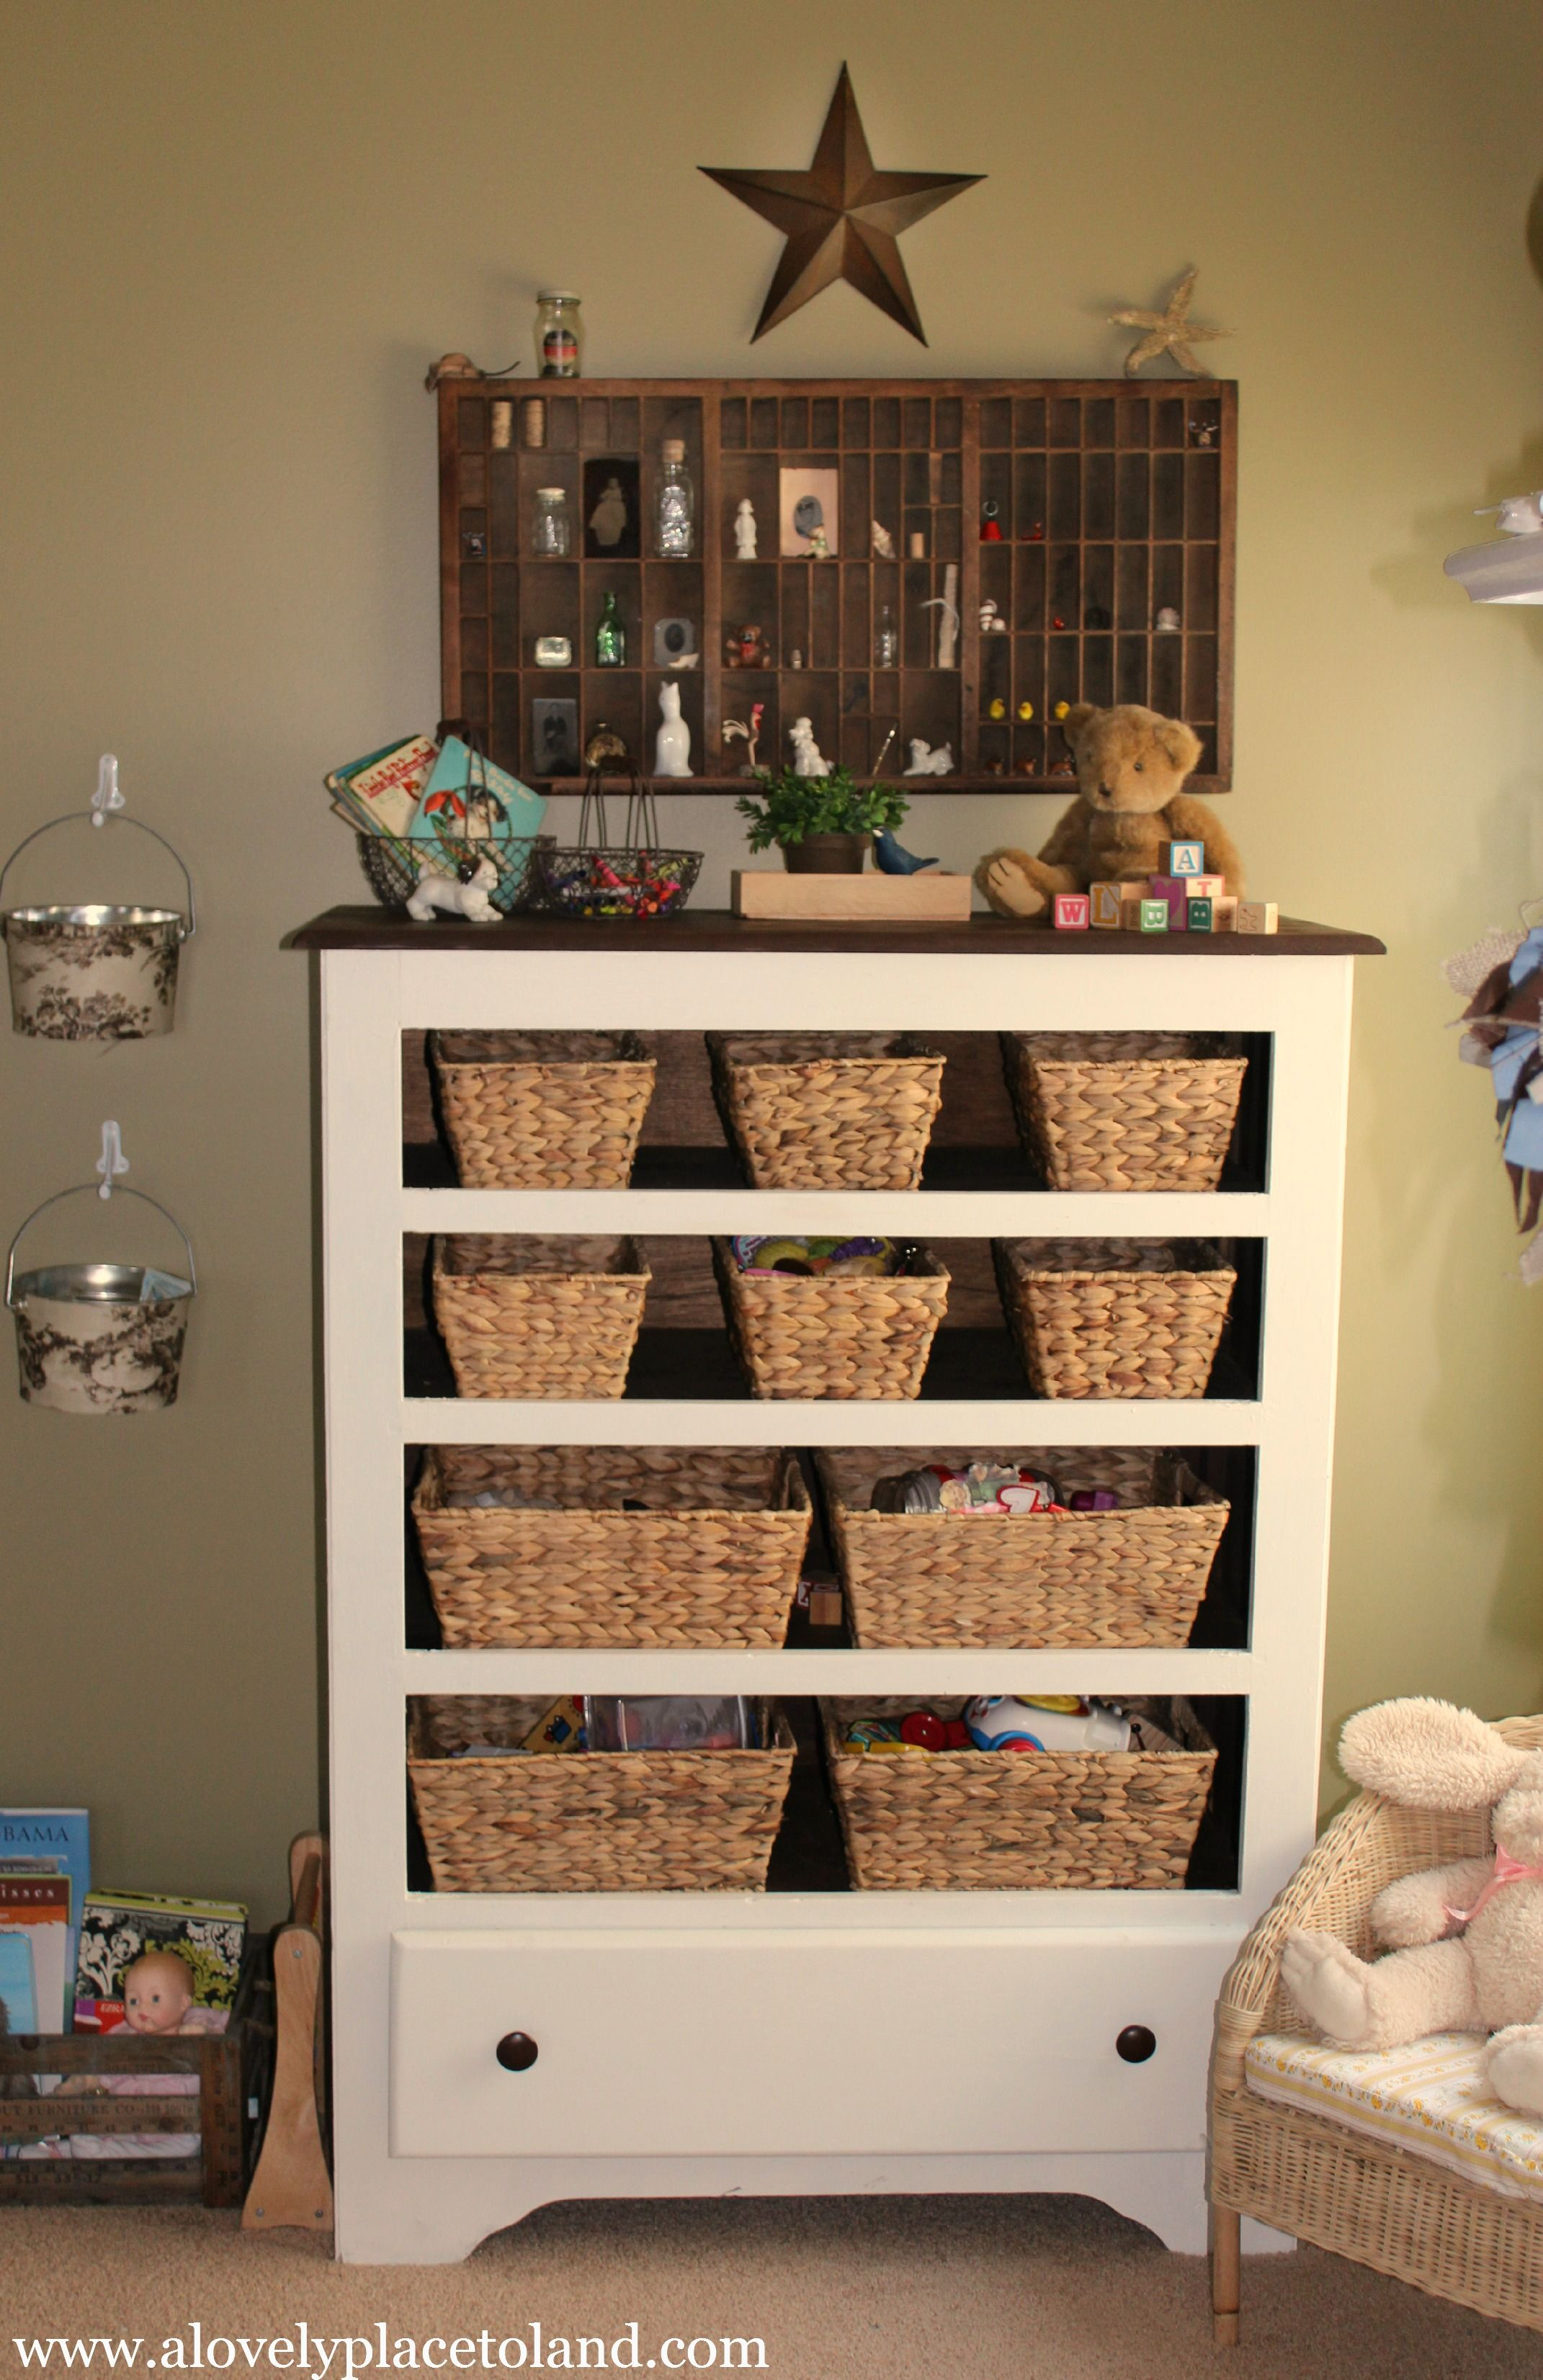 I would love to upcycle a dresser into this only have the face of